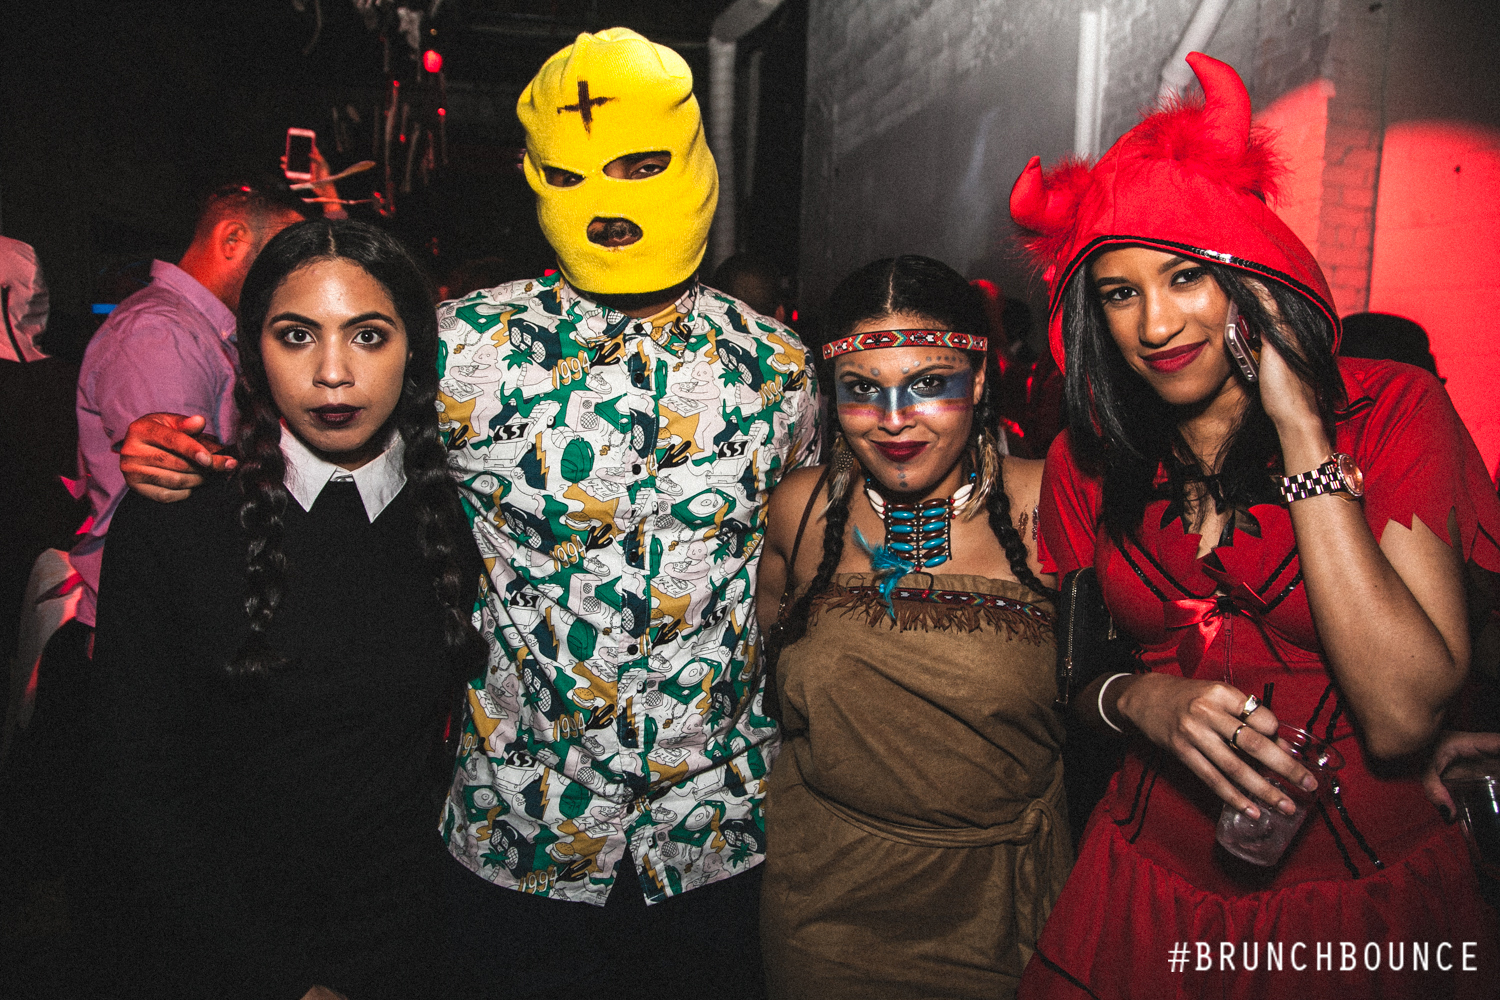 brunch-bounce-x-adidas-originals-halloween-103115_22741555672_o.jpg